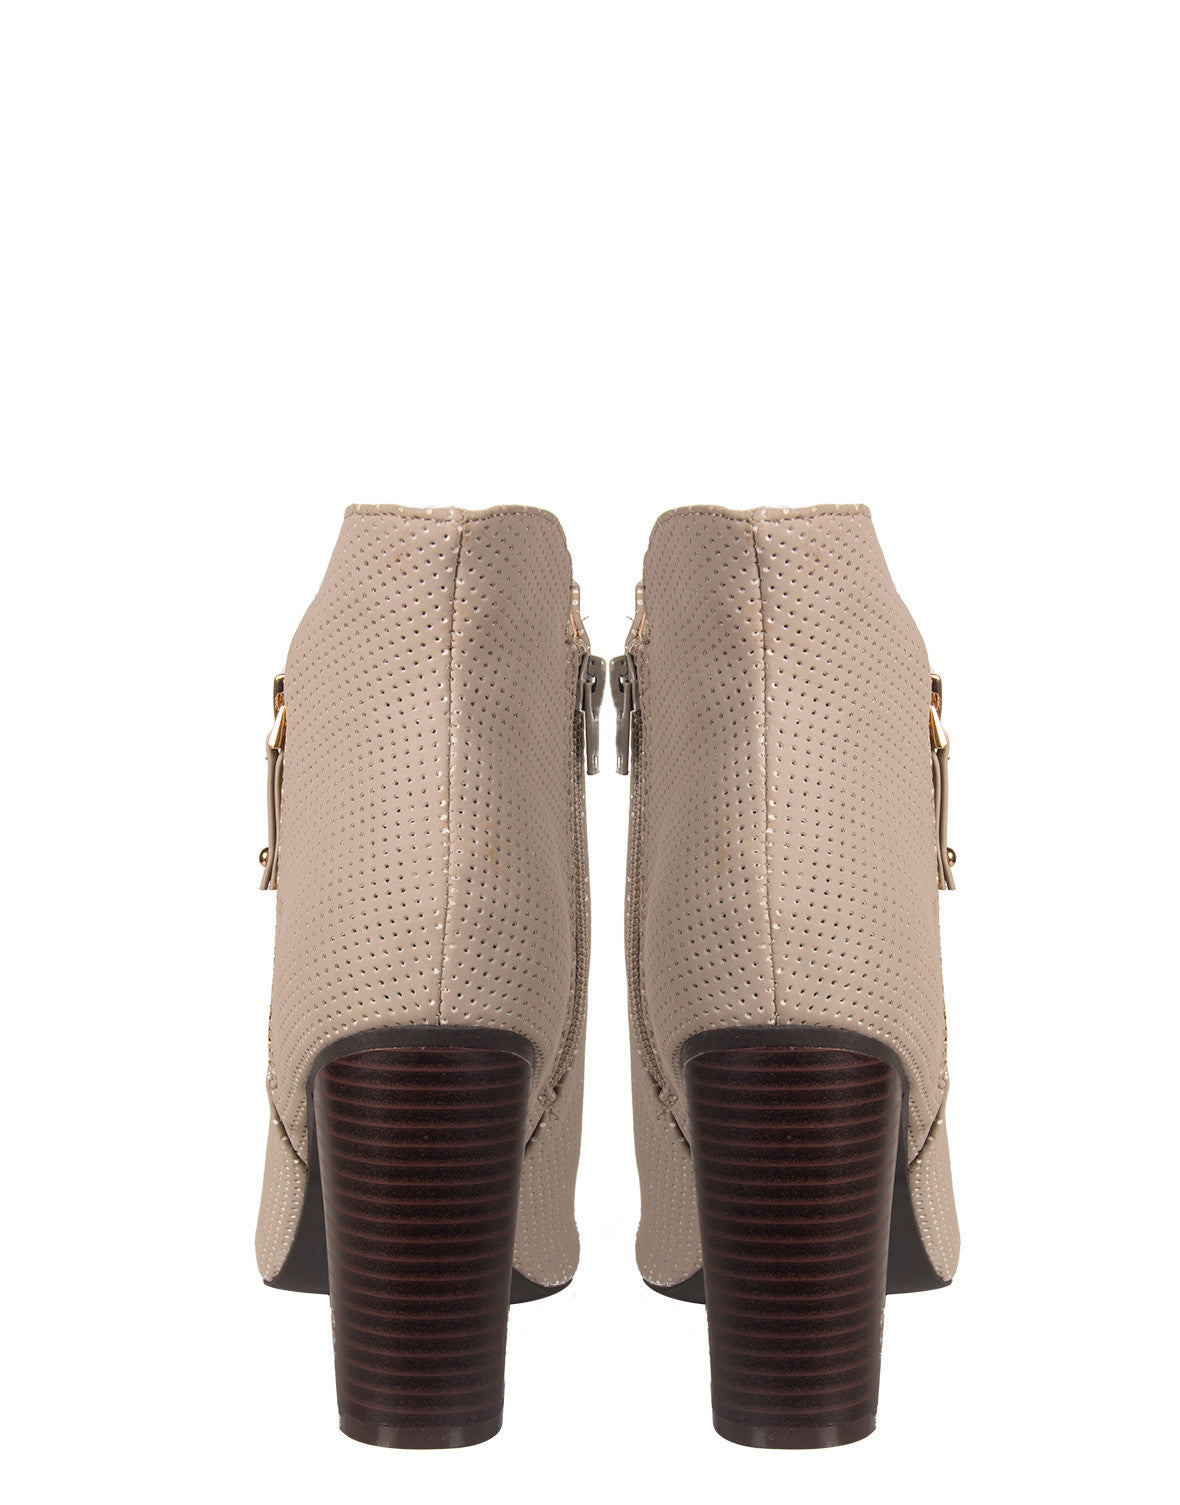 Side Zipper Open Toe Booties - Gray Bamboo Abbatha-13 Stone Grey